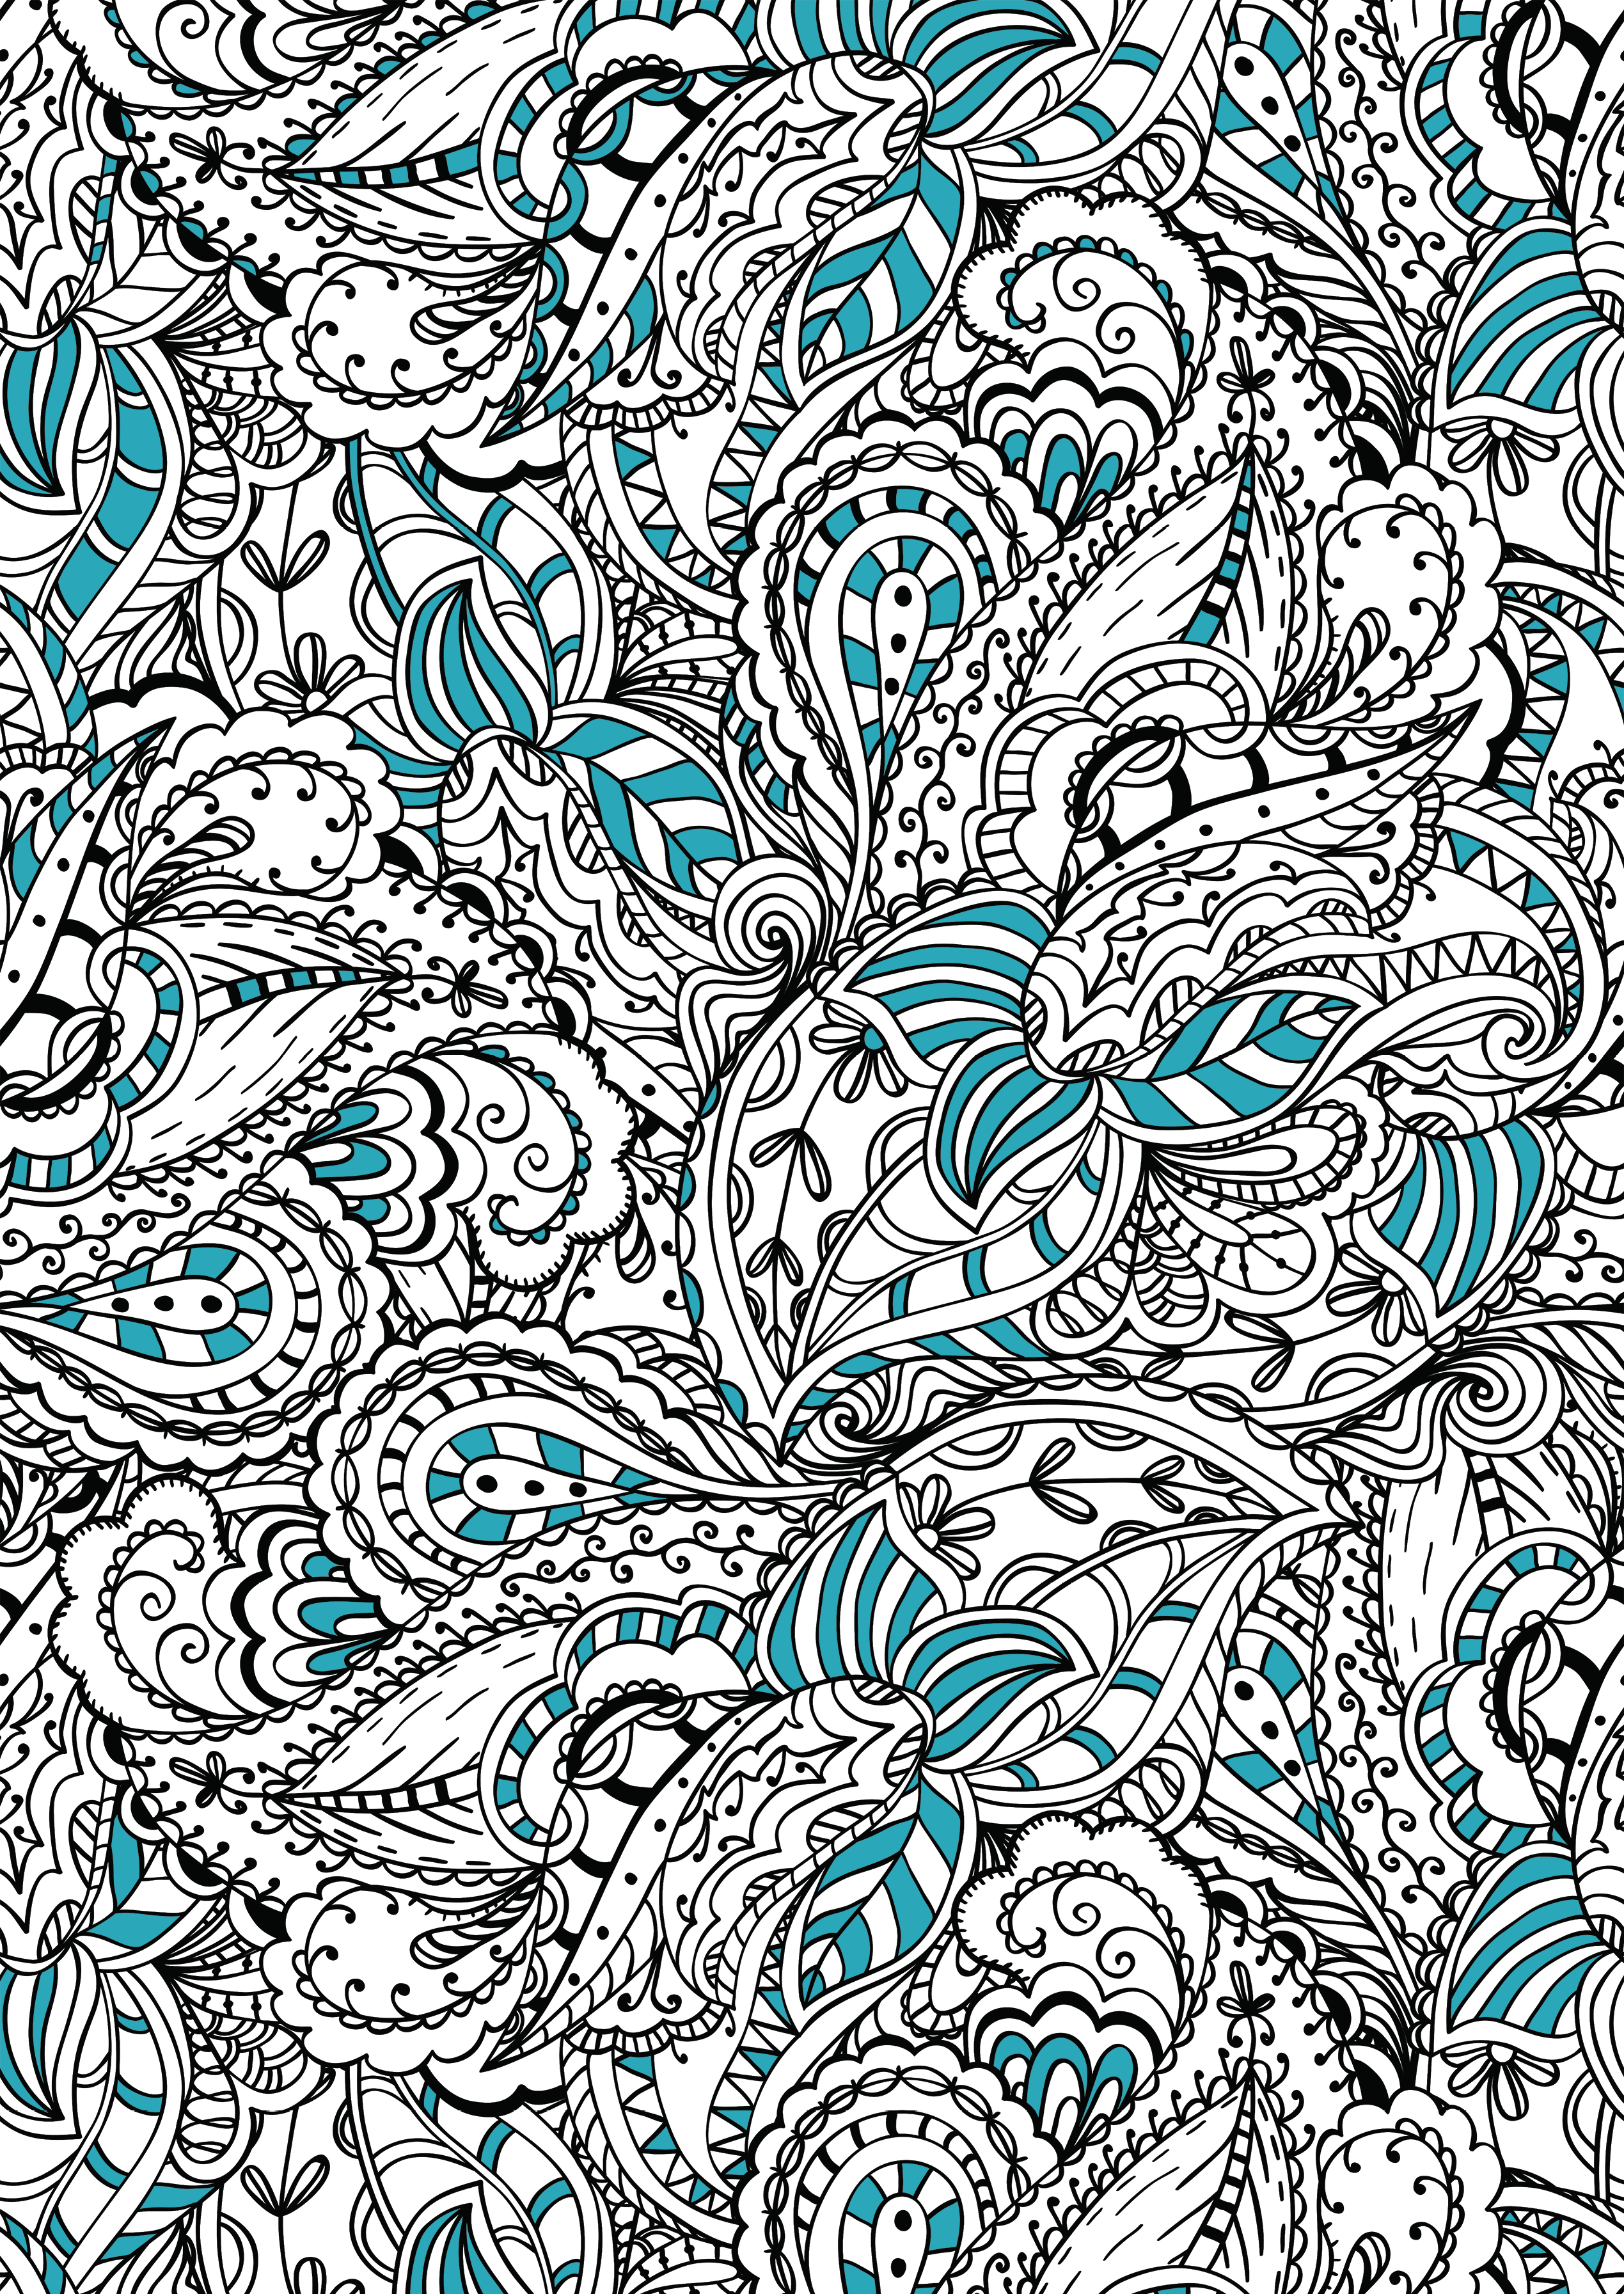 Art Therapy Colouring Book Free Fox Pattern Download Whsmith Blog Art Therapy Coloring Book Coloring Book Art Coloring Books